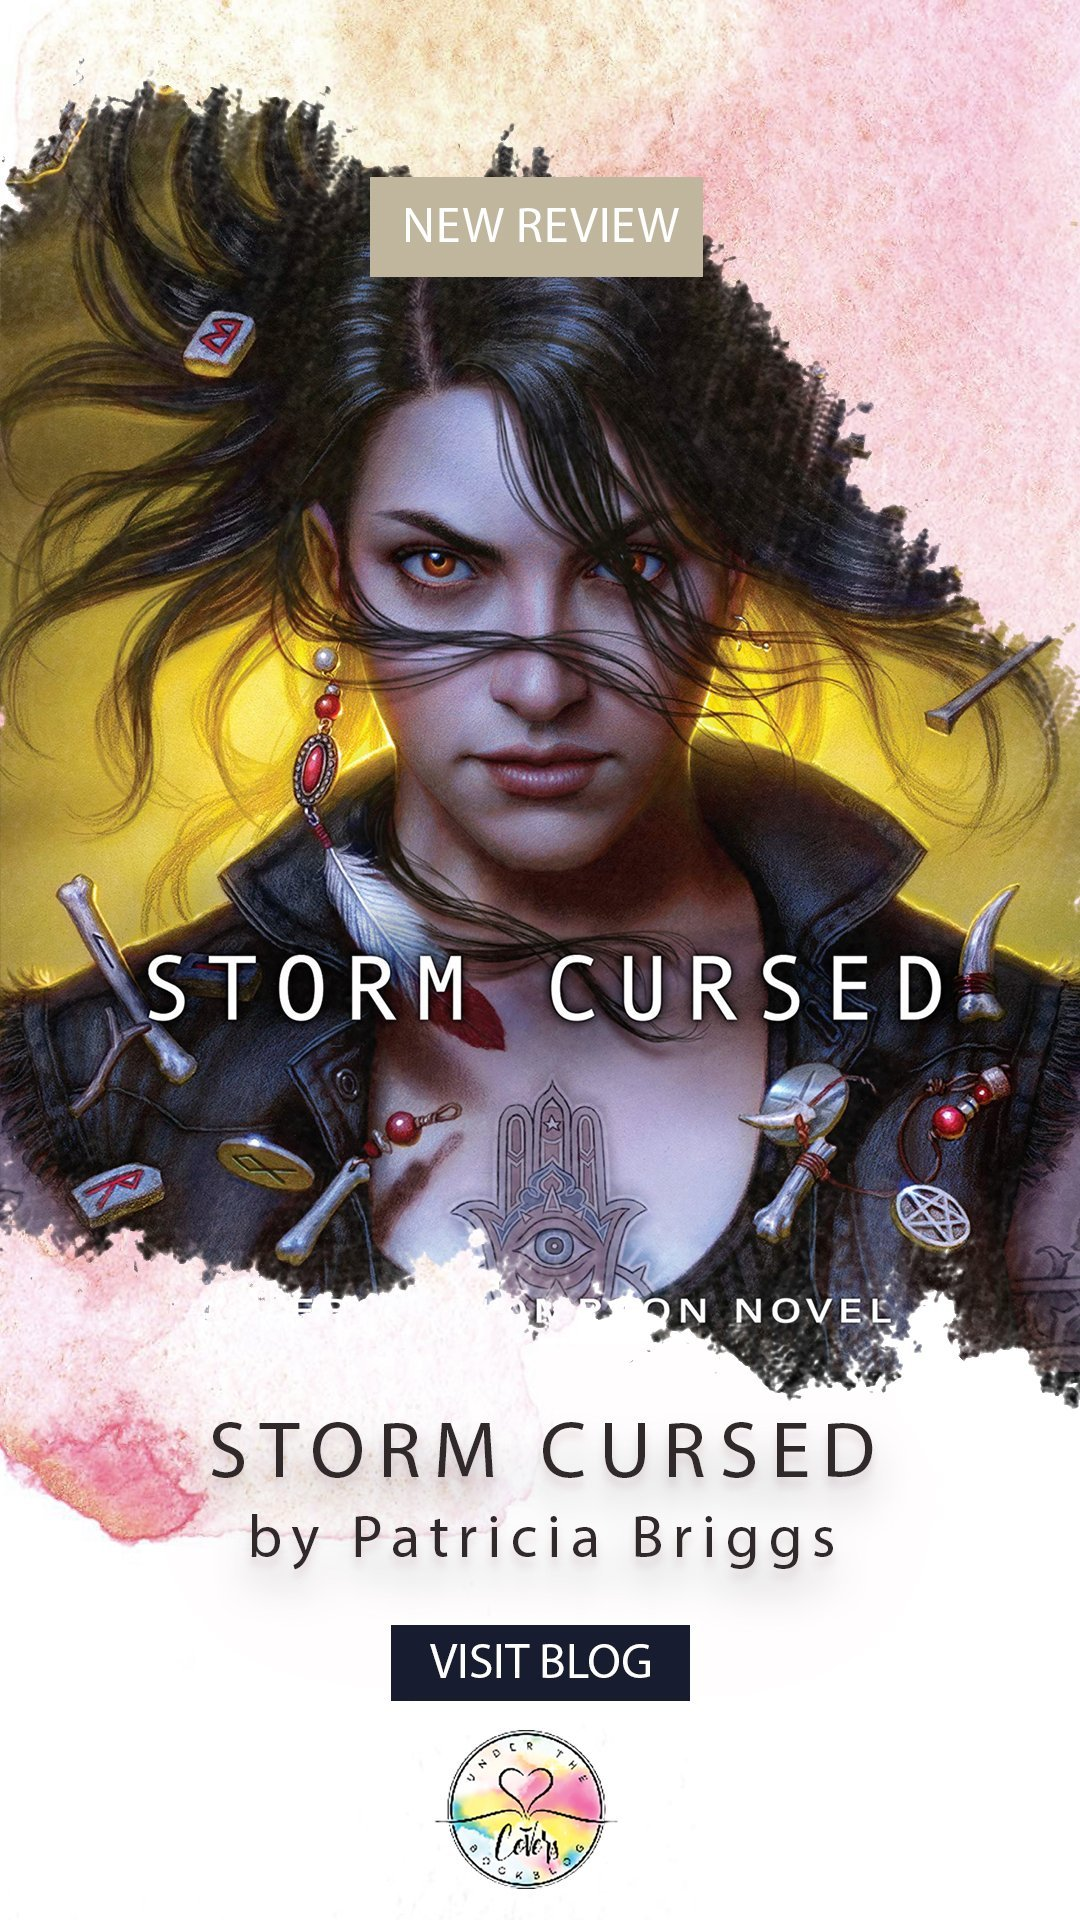 ARC Review: Storm Cursed by Patricia Briggs